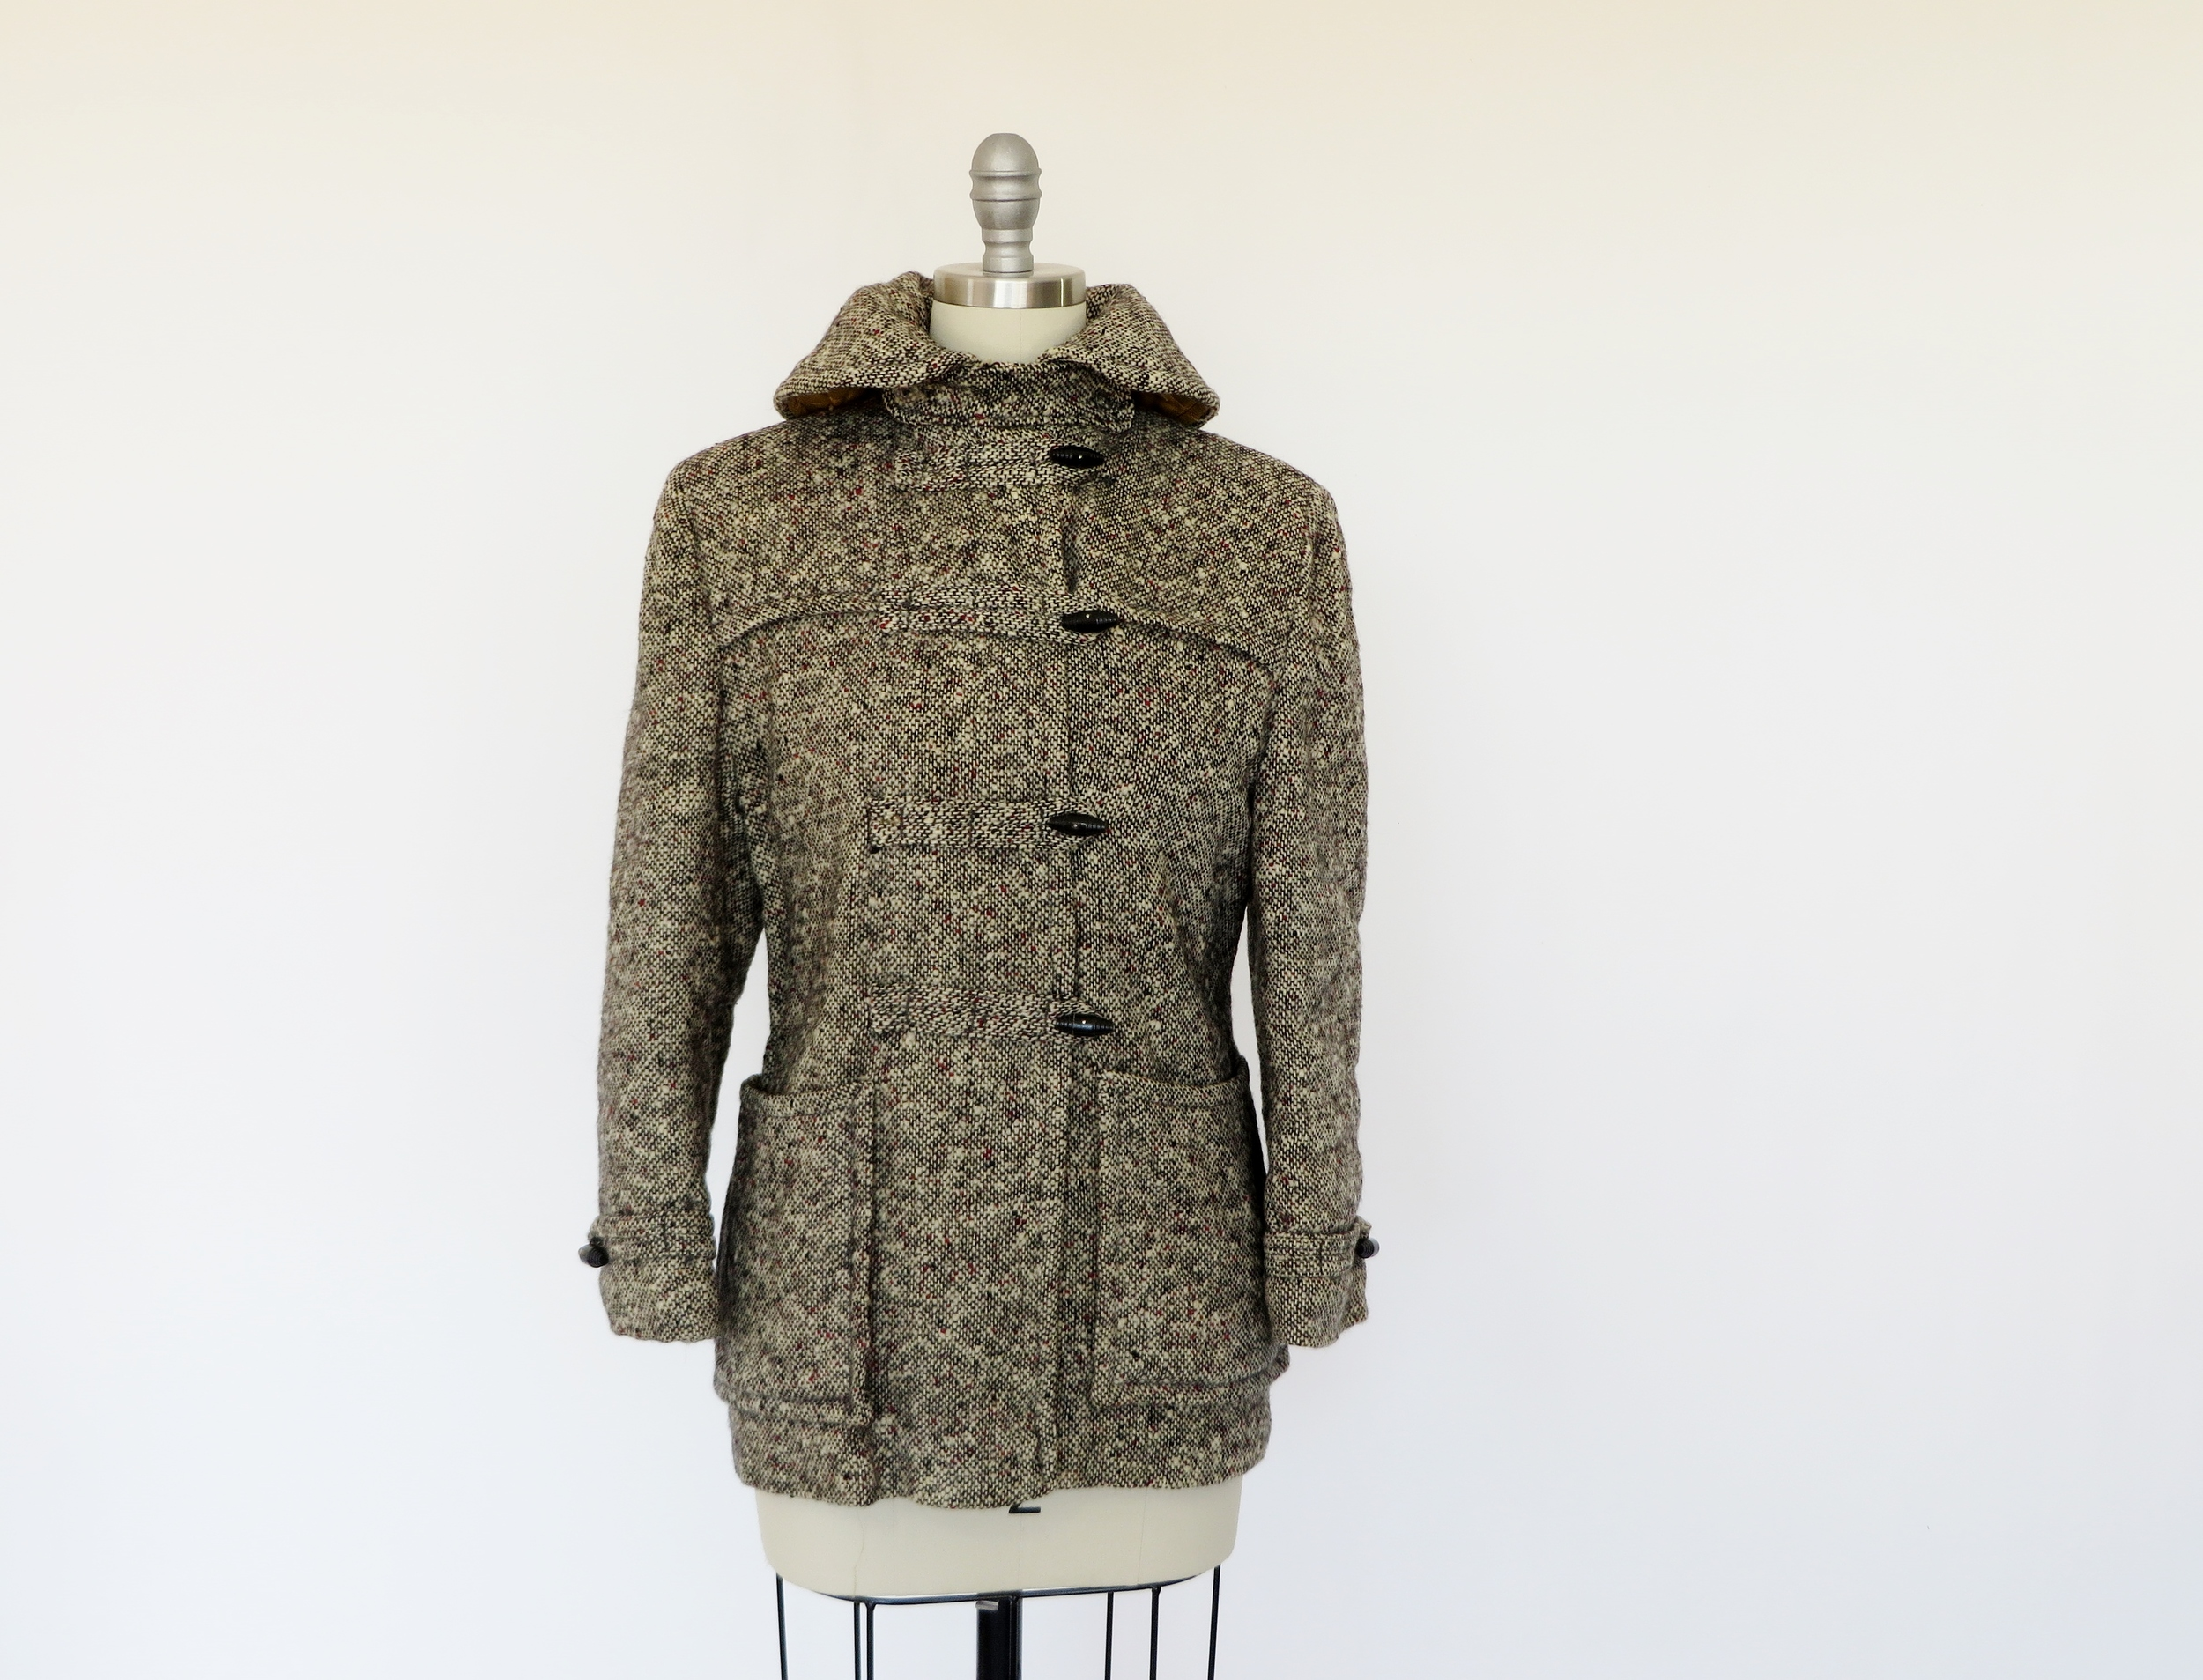 1940's - early 1950's tweed coat by Honeylane, a division of Sears, Roebuck, & Co.